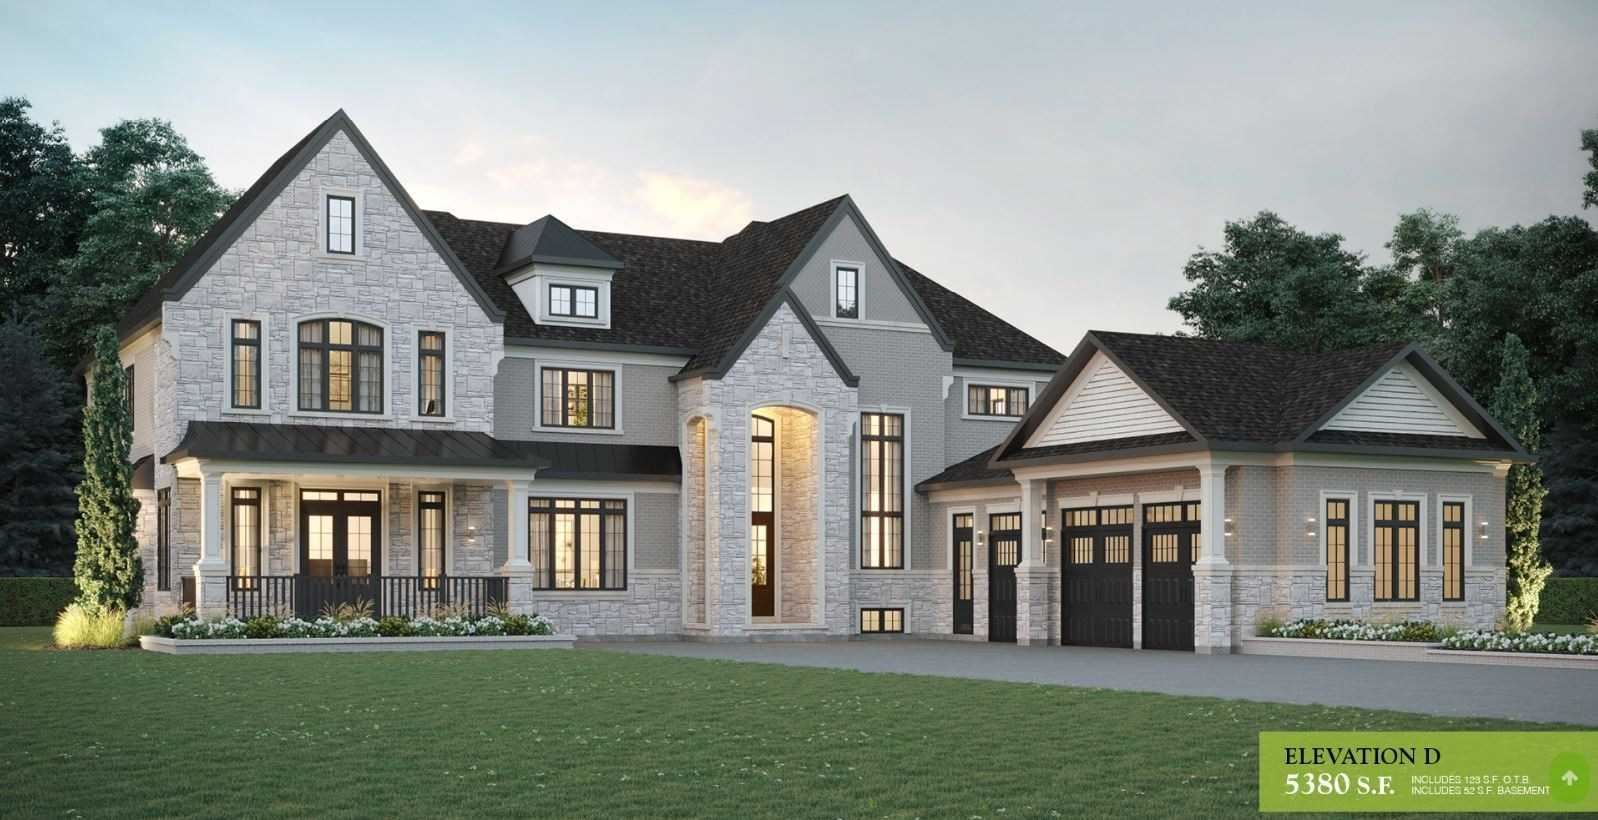 17 Country Lane Dr, Caledon, ON L7E 3S2 - MLS#: W5349956